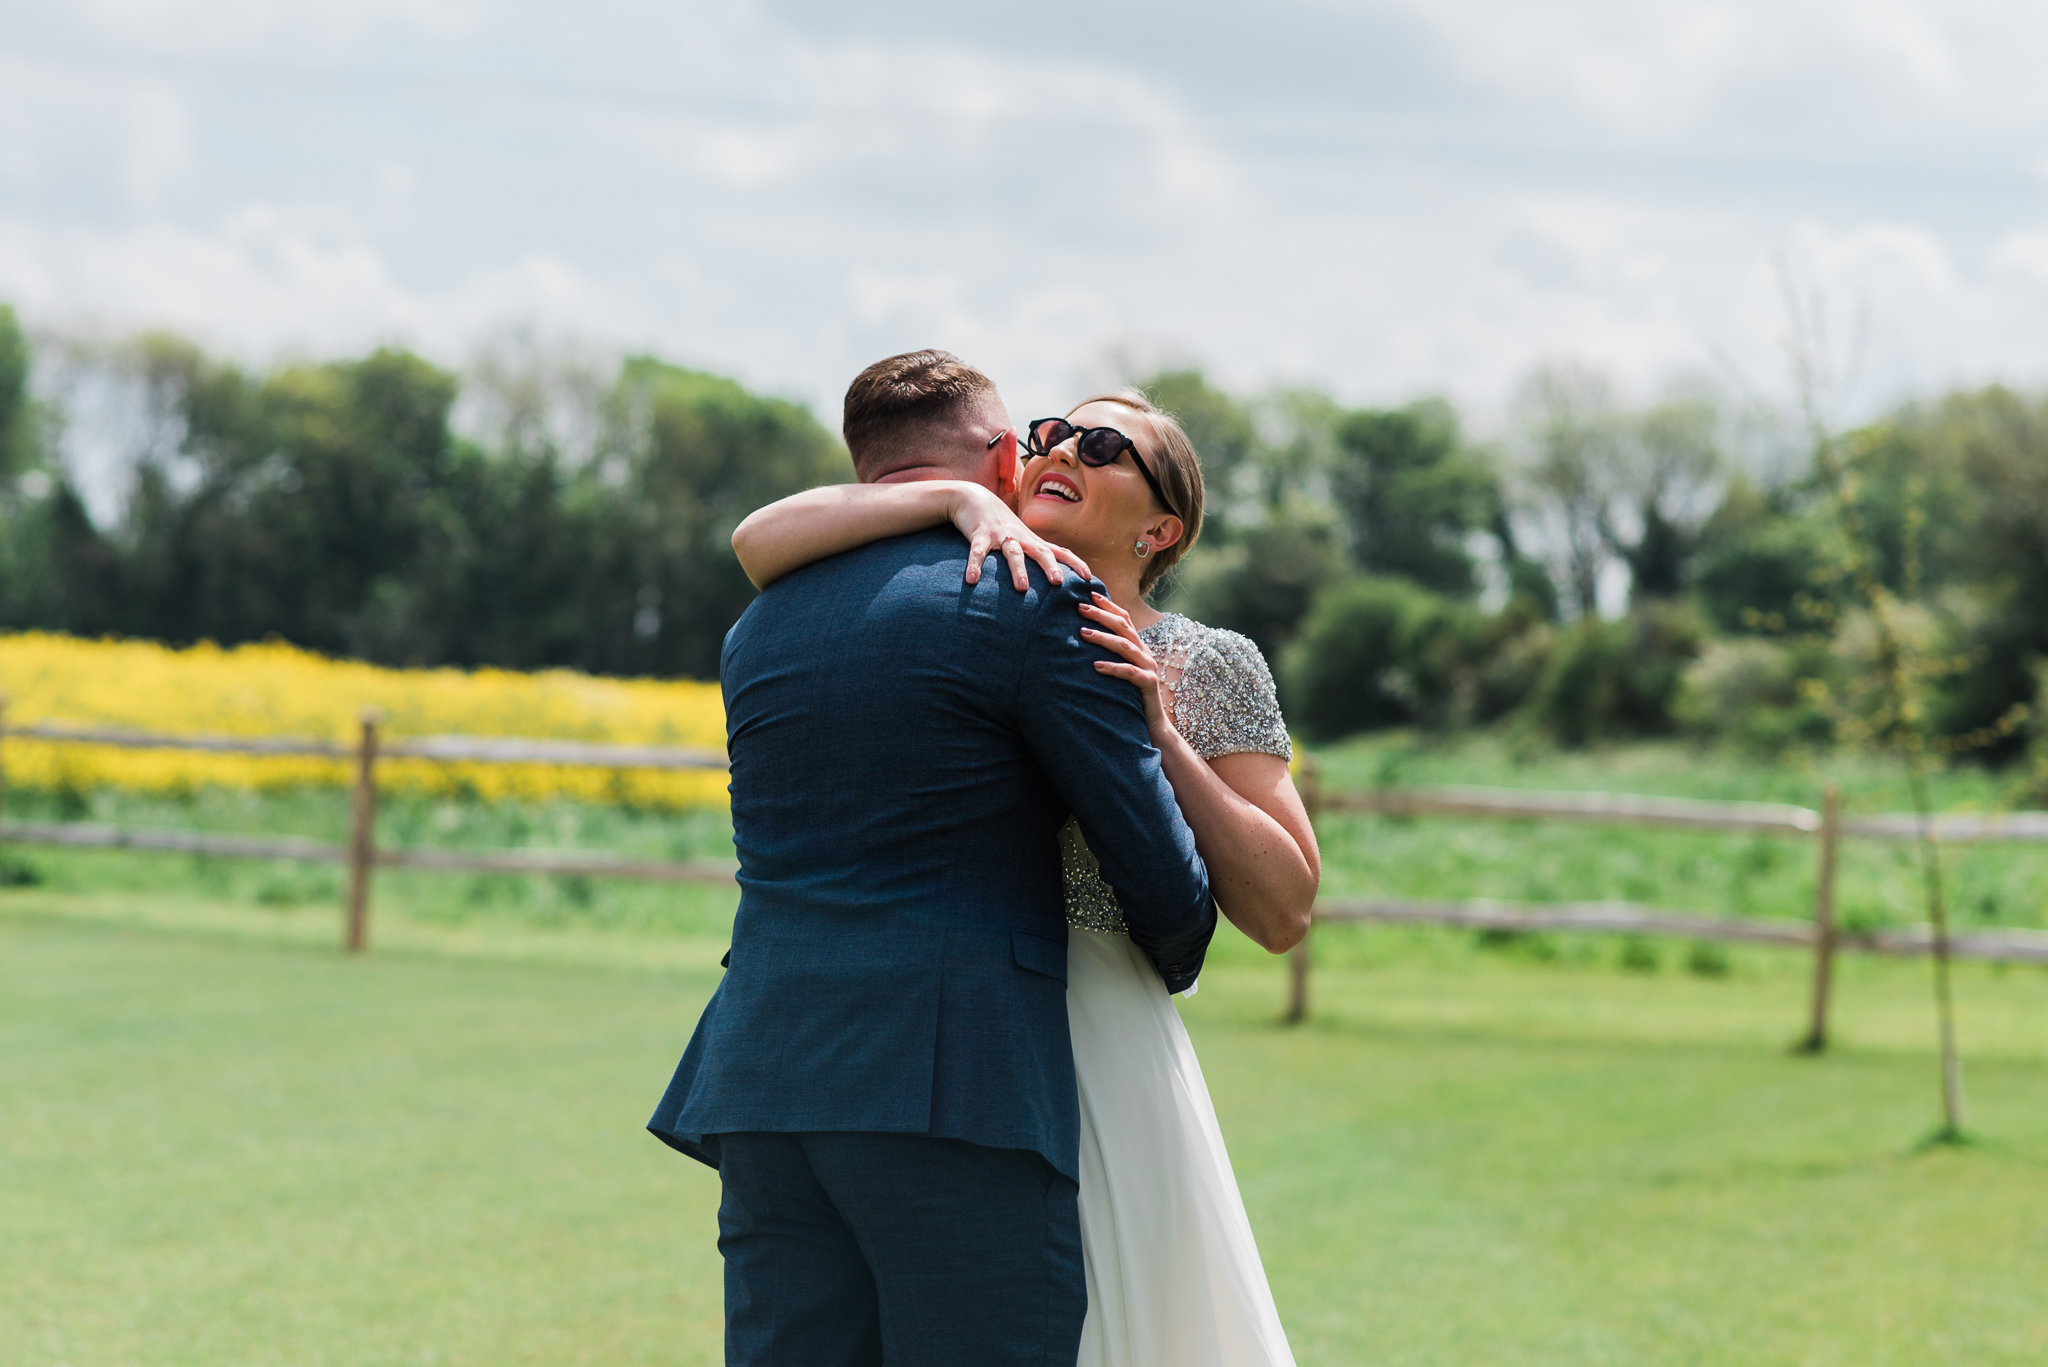 Bride and groom hugging in First Look at Lapstone Barn